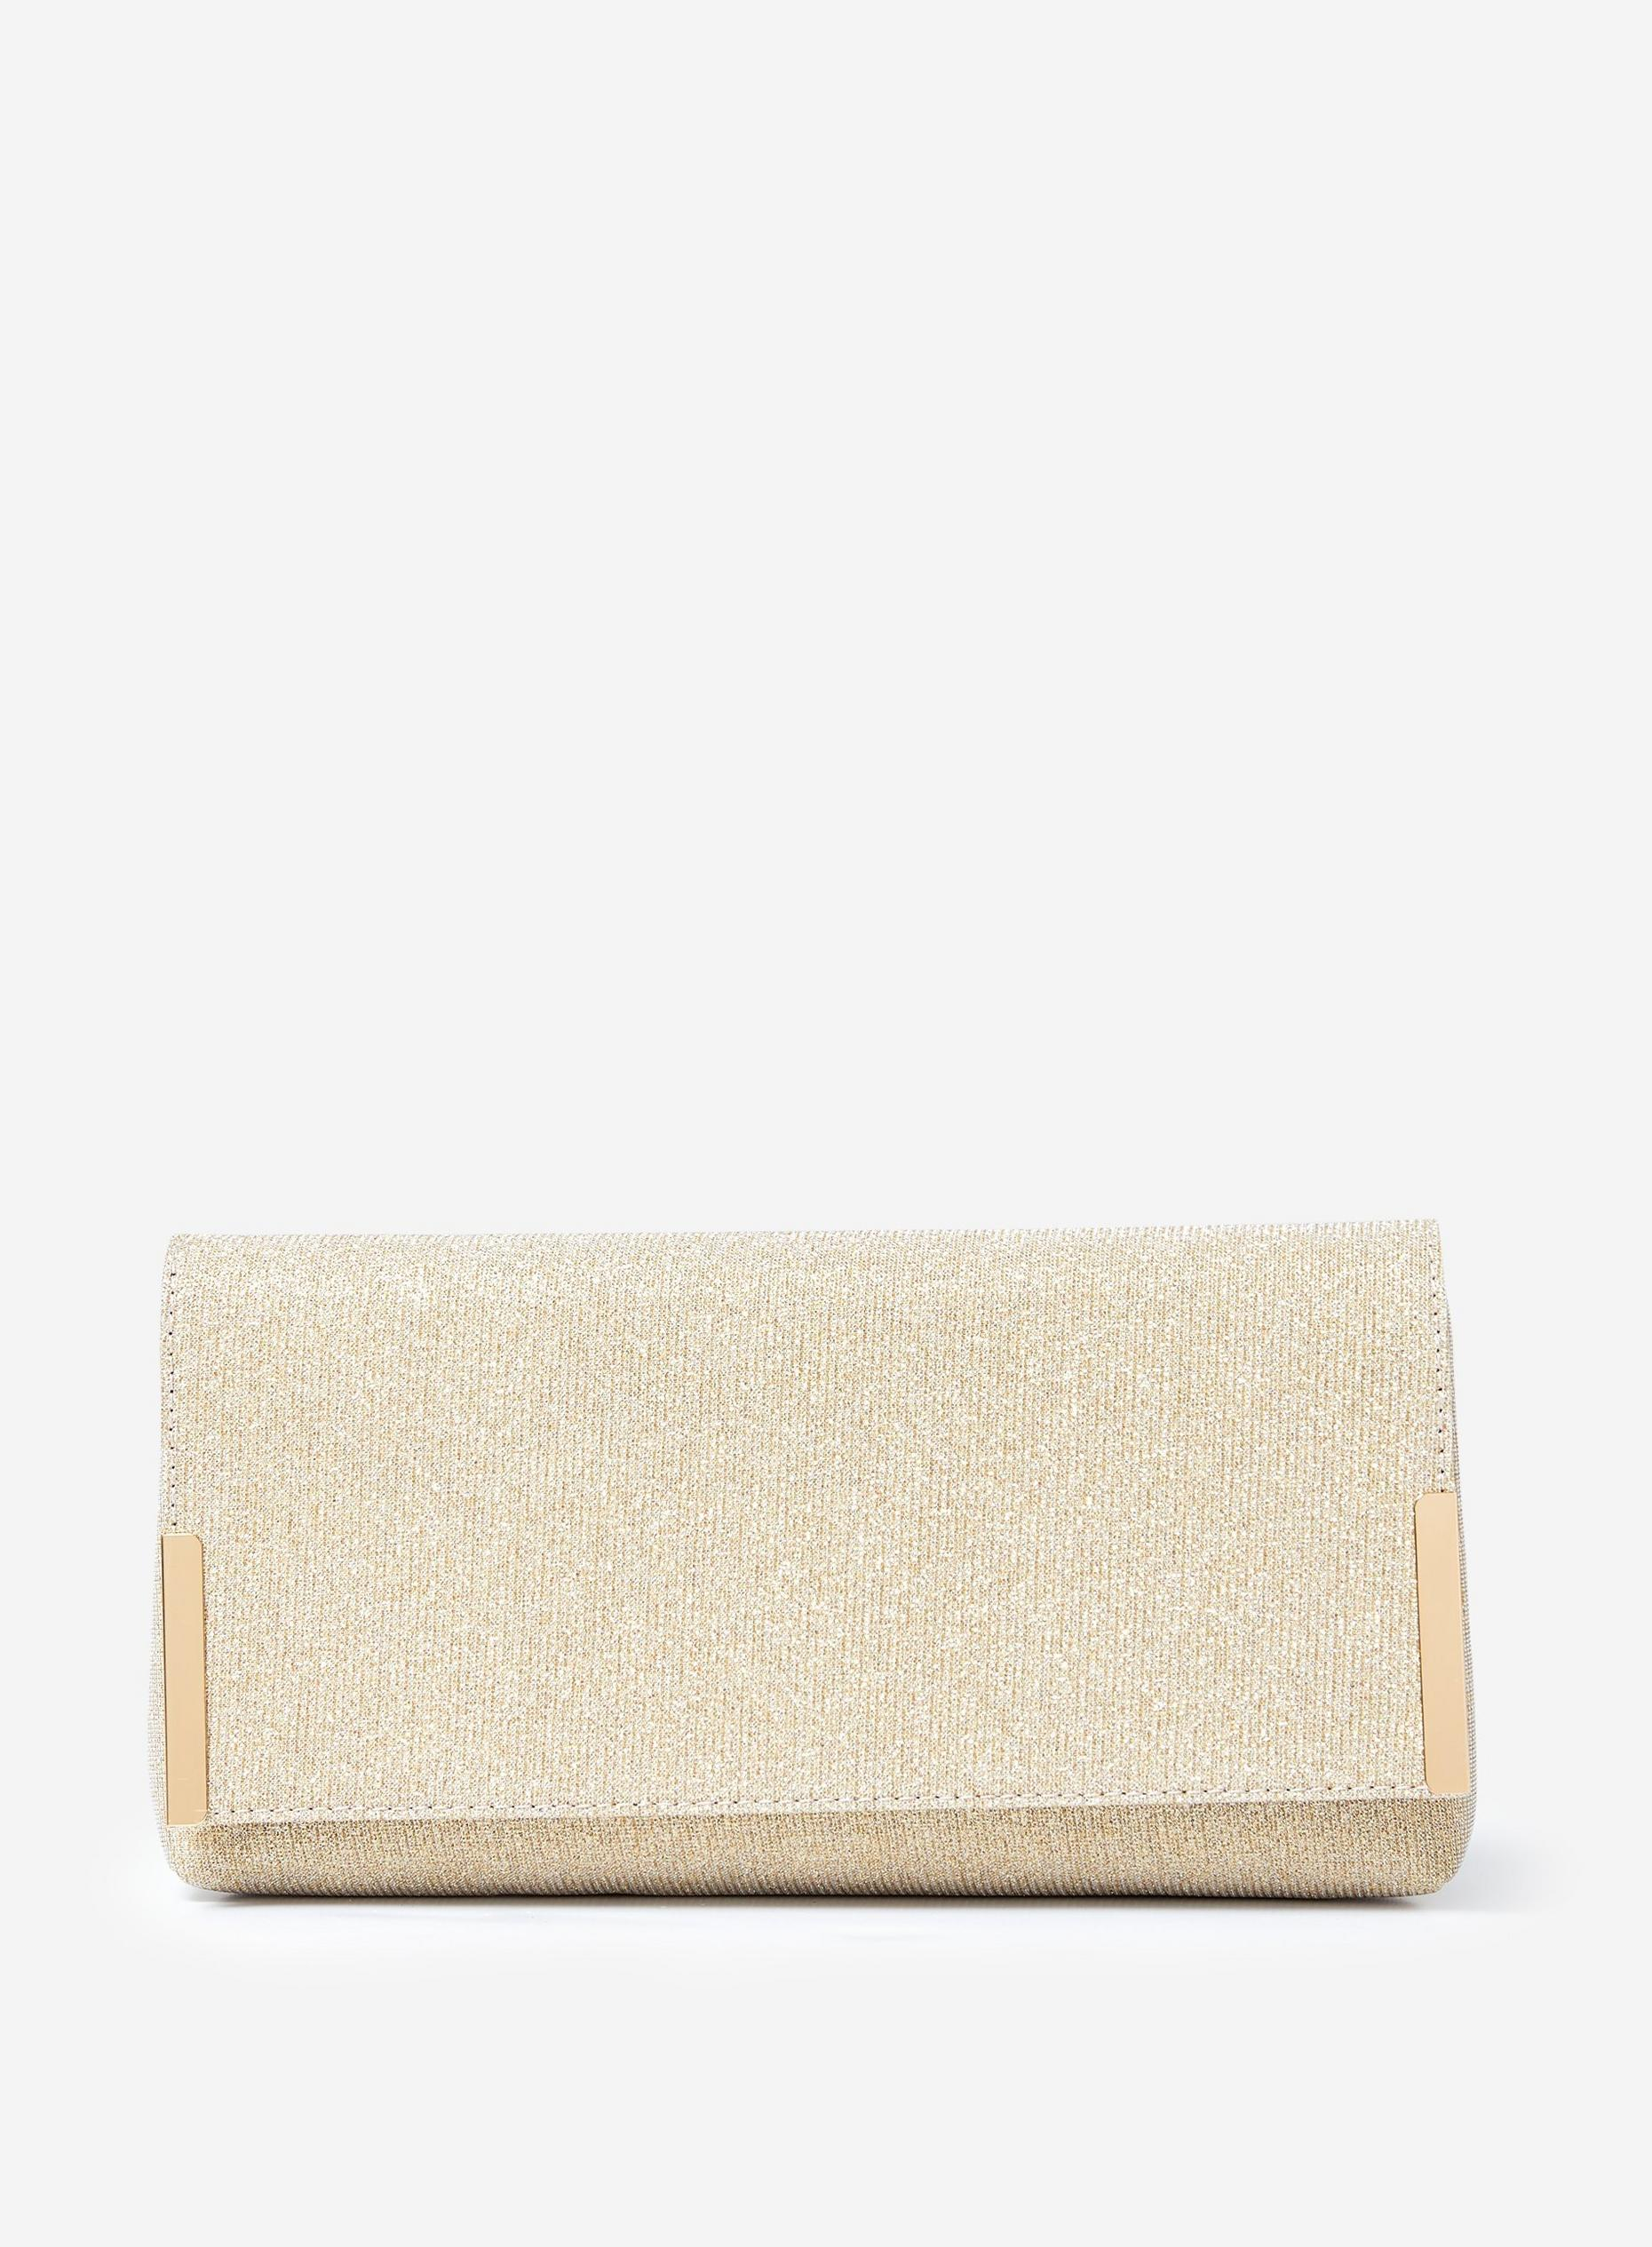 Gold Metal Side Bar Clutch Bag